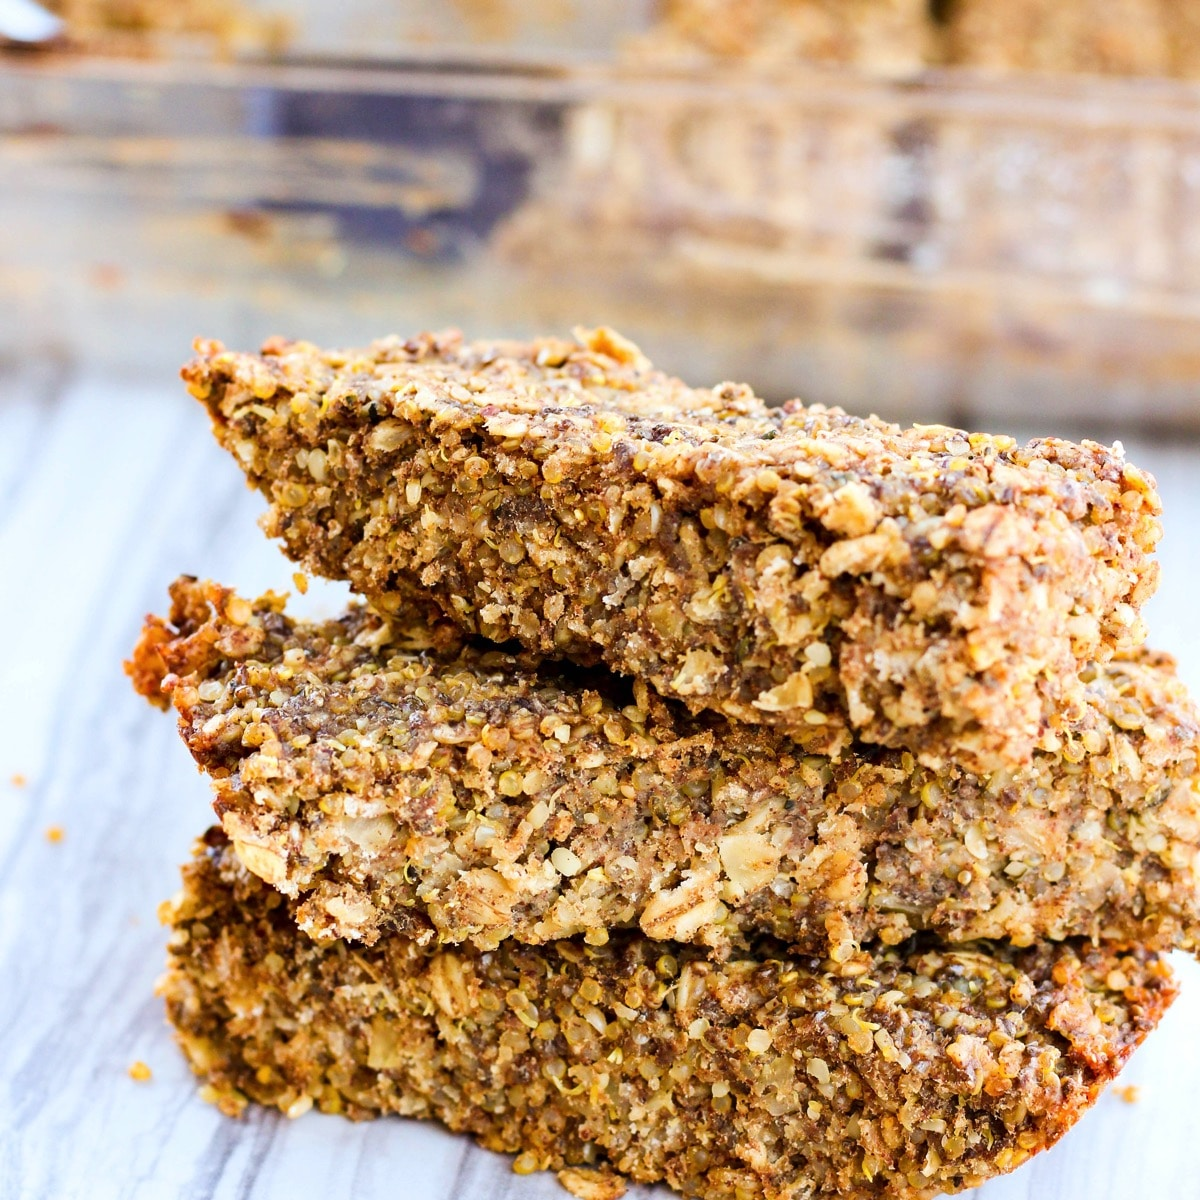 Vegan Hempseed Bar Stack 1 of 1